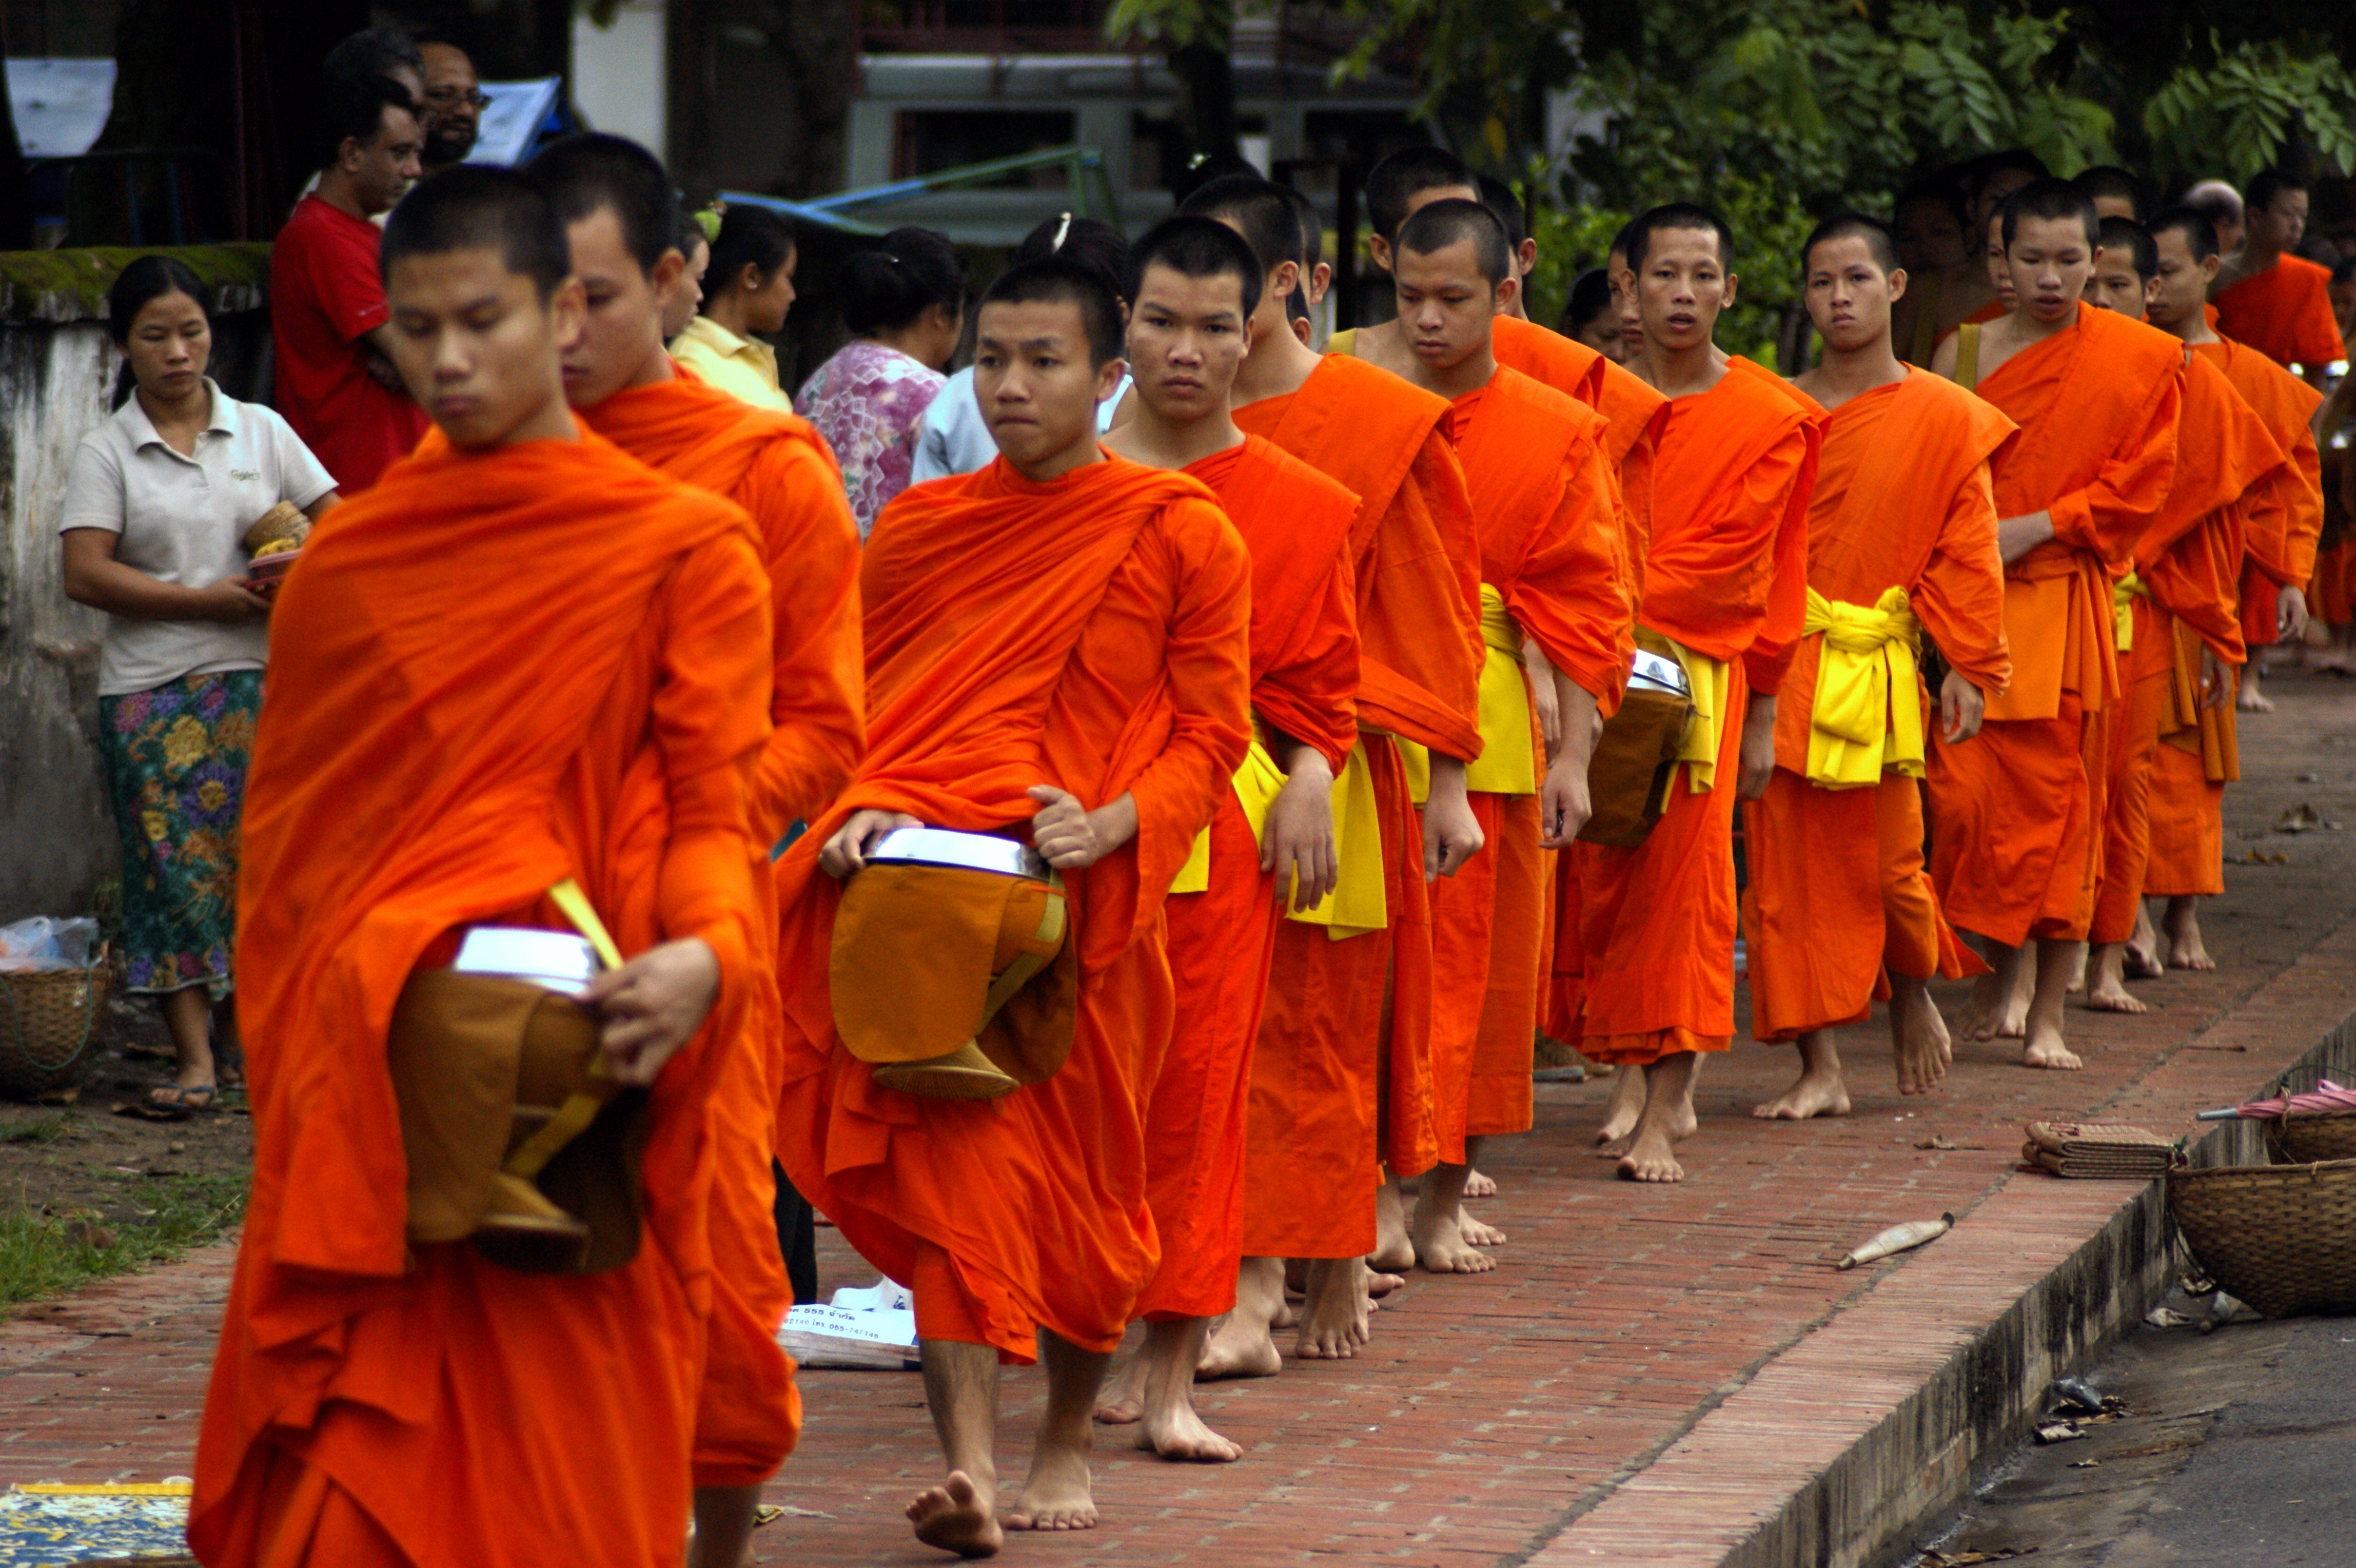 buddhist single men in micro The ultimate goal of a buddhist is to get enlightenment and liberate oneself from endless reincarnation and suffering some see buddhism as a religion, others see it.